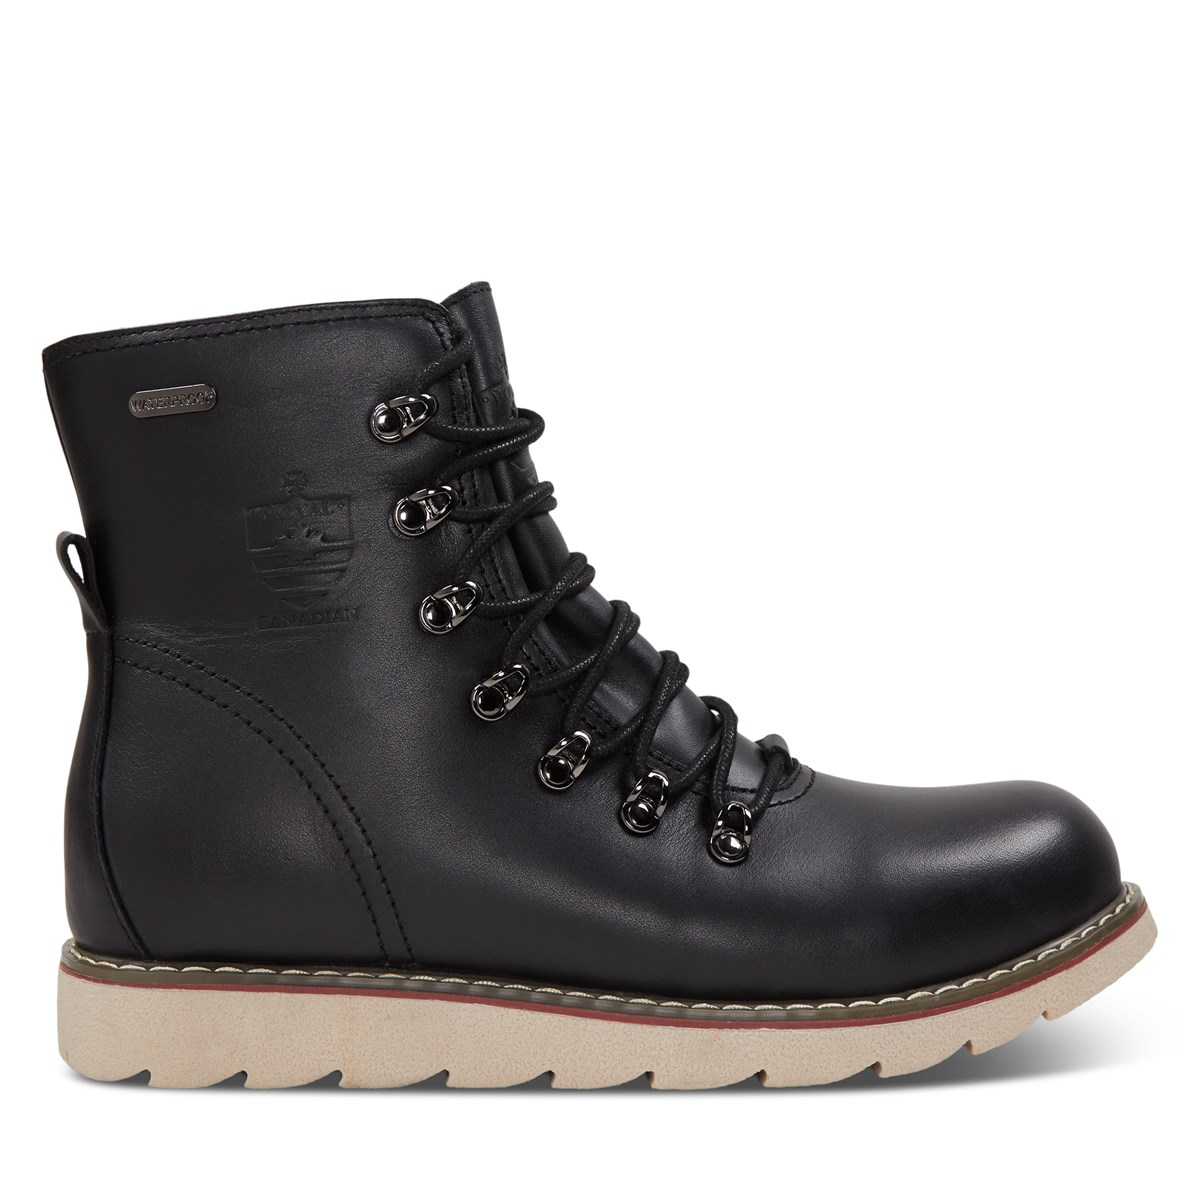 Men's Armstrong Boots in Black